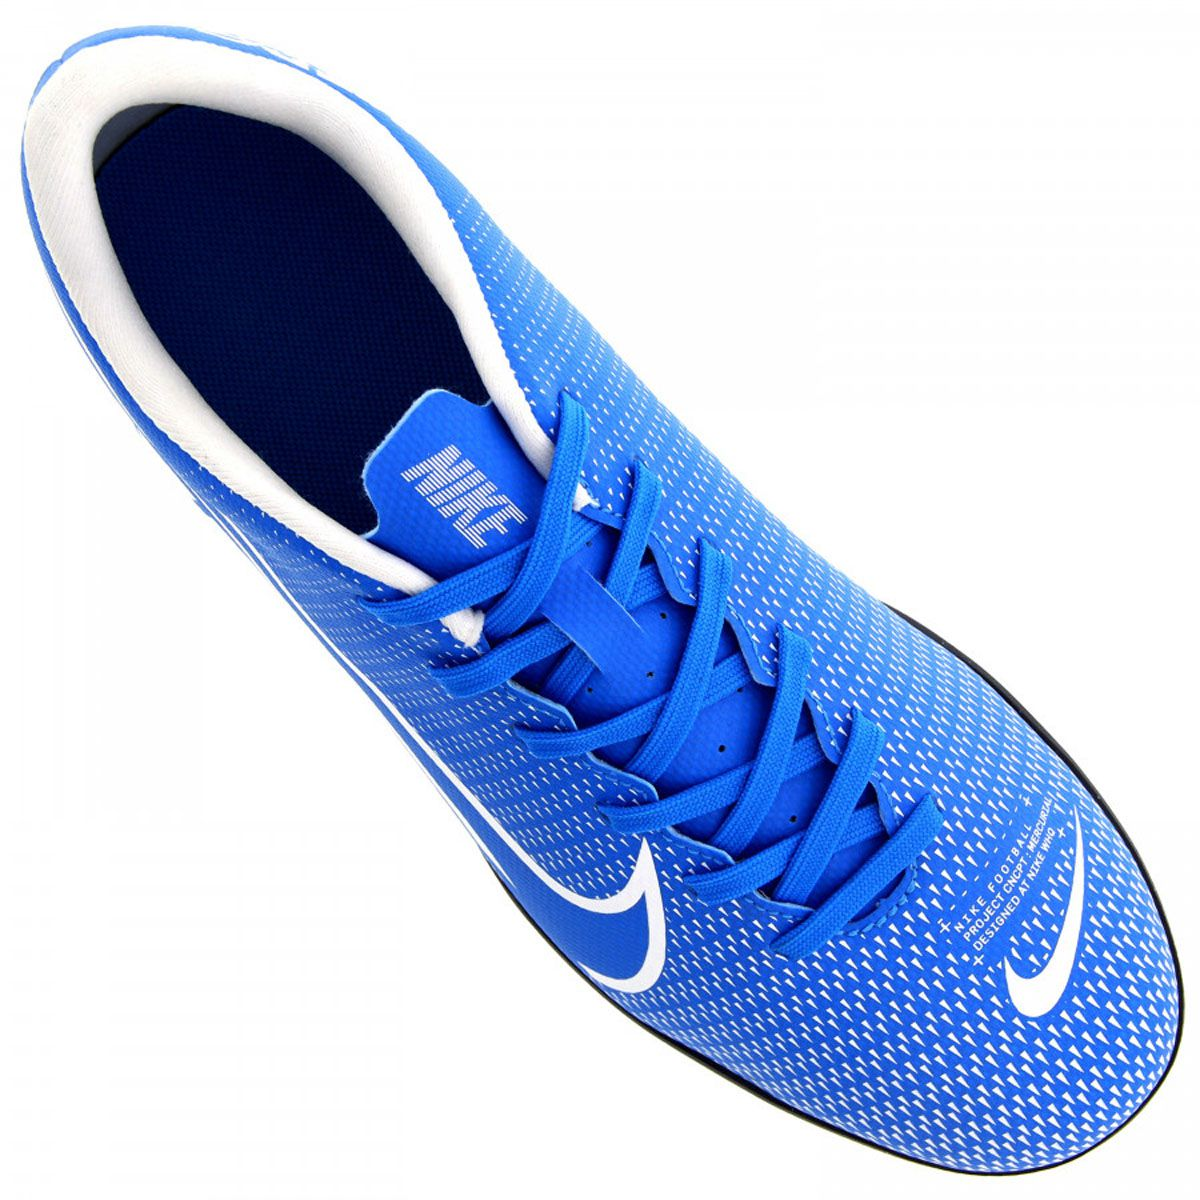 Chuteira Society Nike Mercurial Vapor 13 Club TF